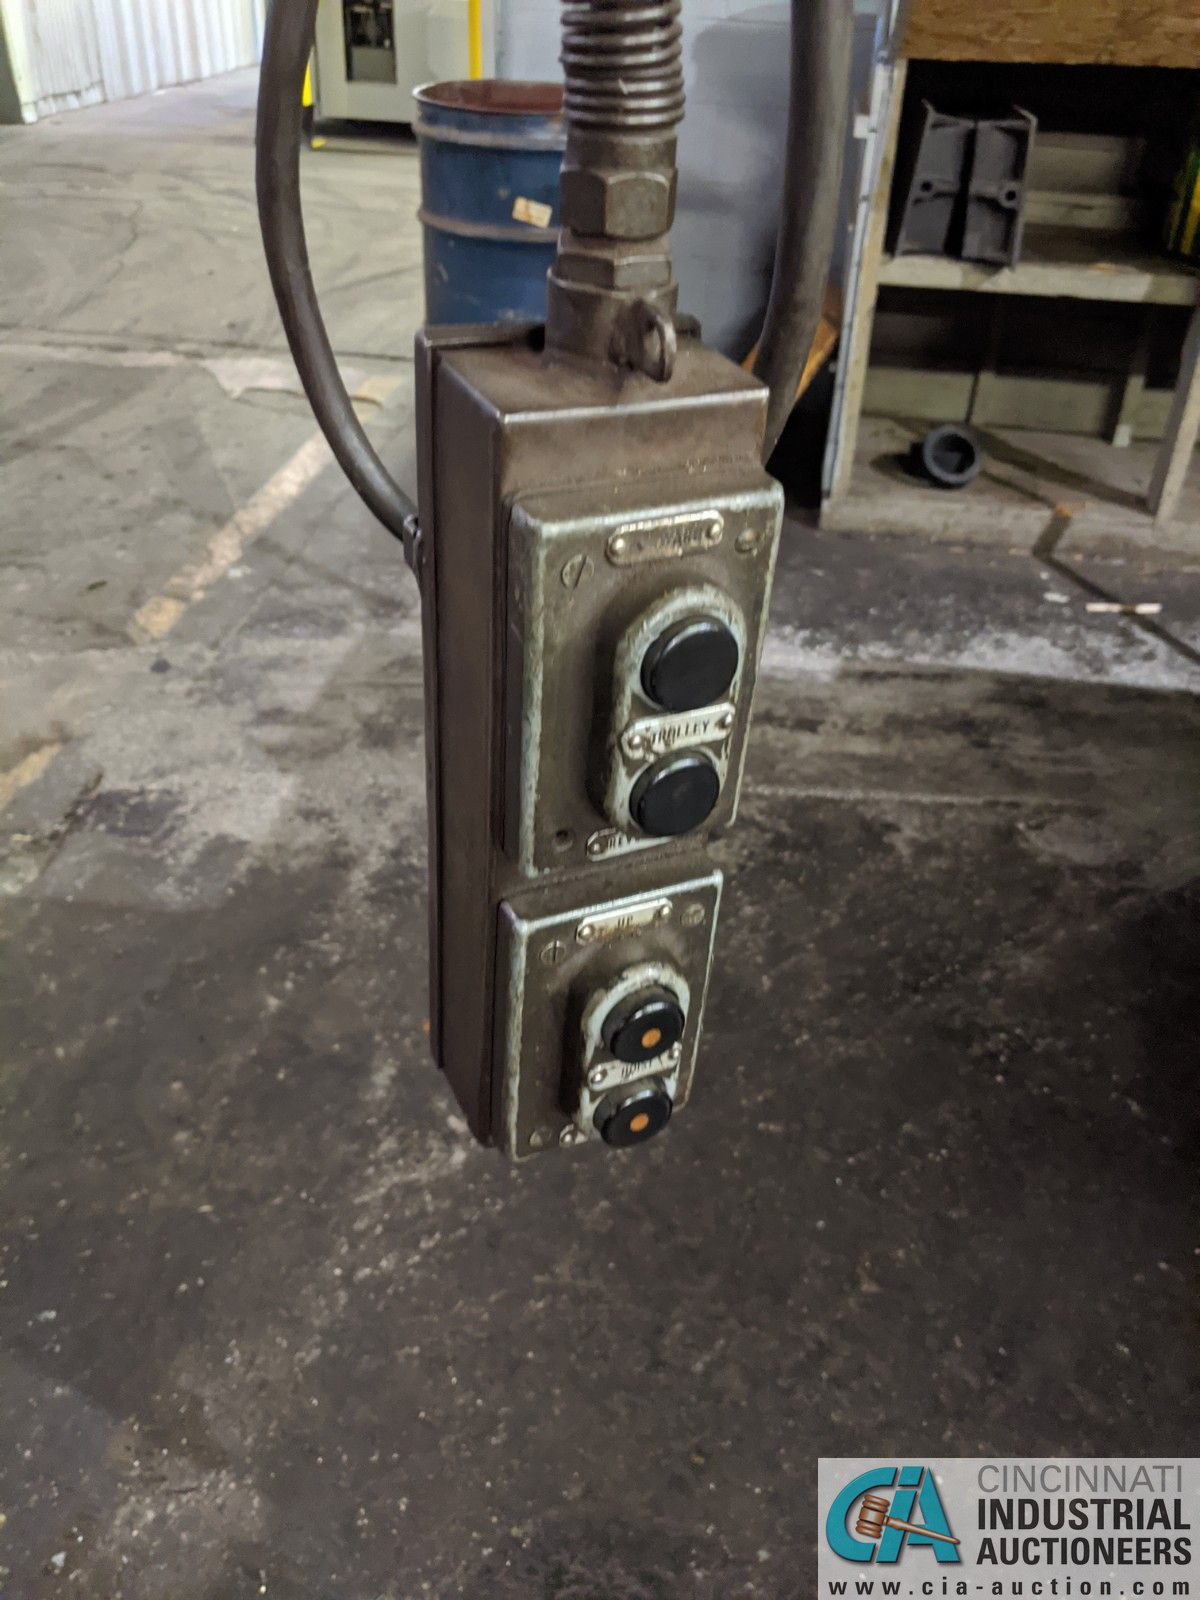 2 TON LOAD LIFTER ELECTRIC CABLE HOIST, NO I-BEAM - Image 2 of 2